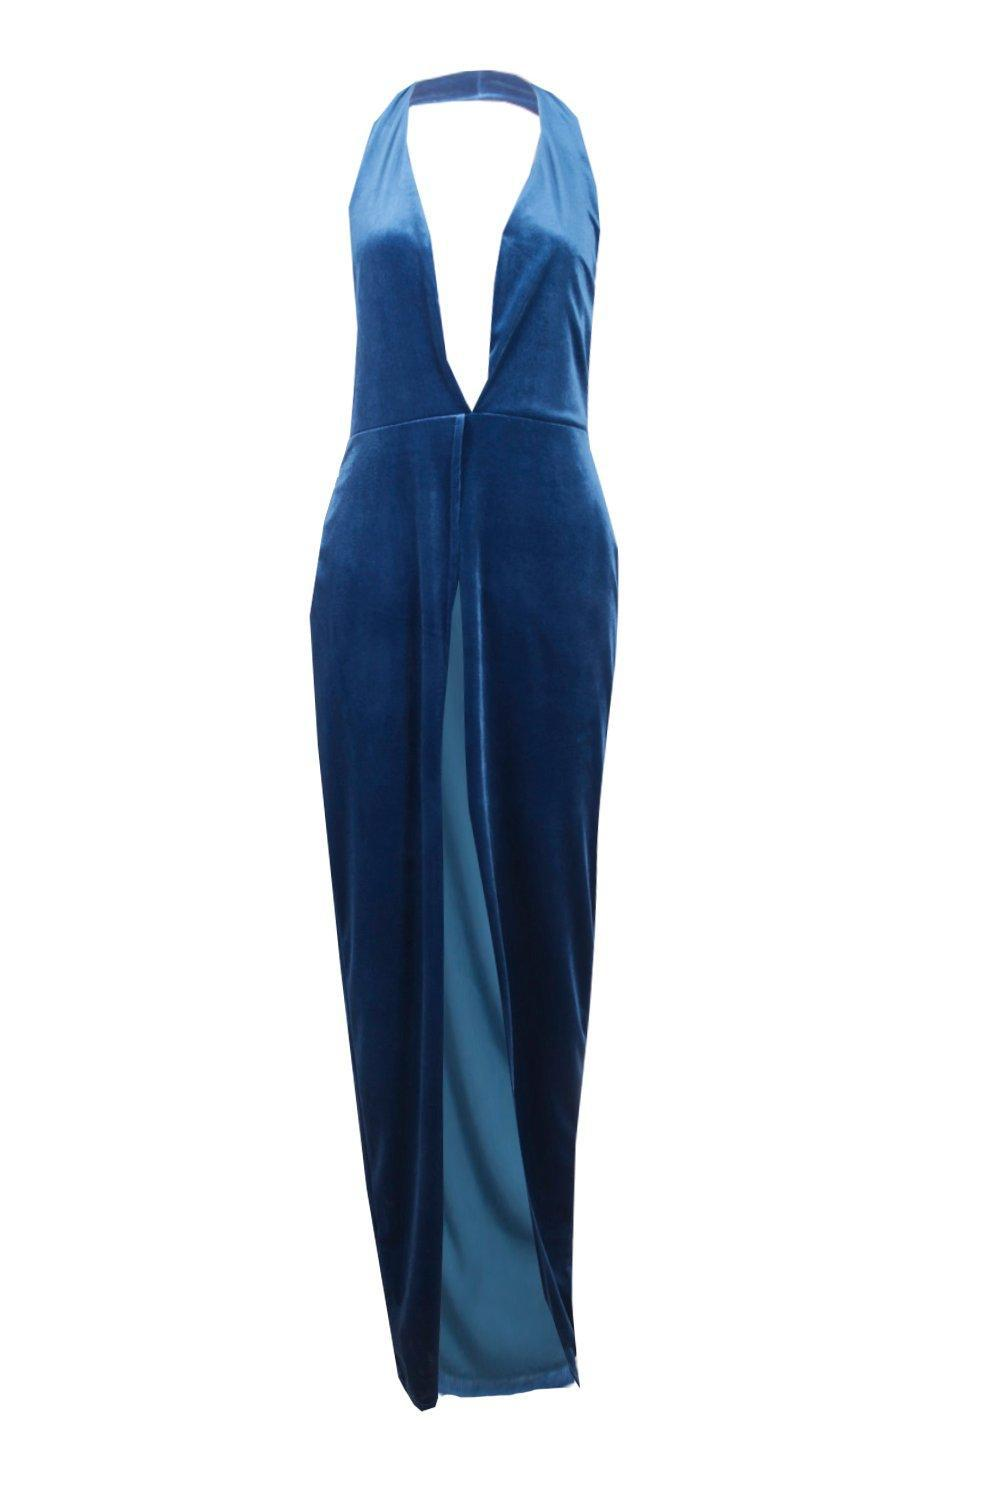 Lyst - Boohoo Alia Velvet Plunge Side Split Maxi Dress in Blue fc2c3cb35